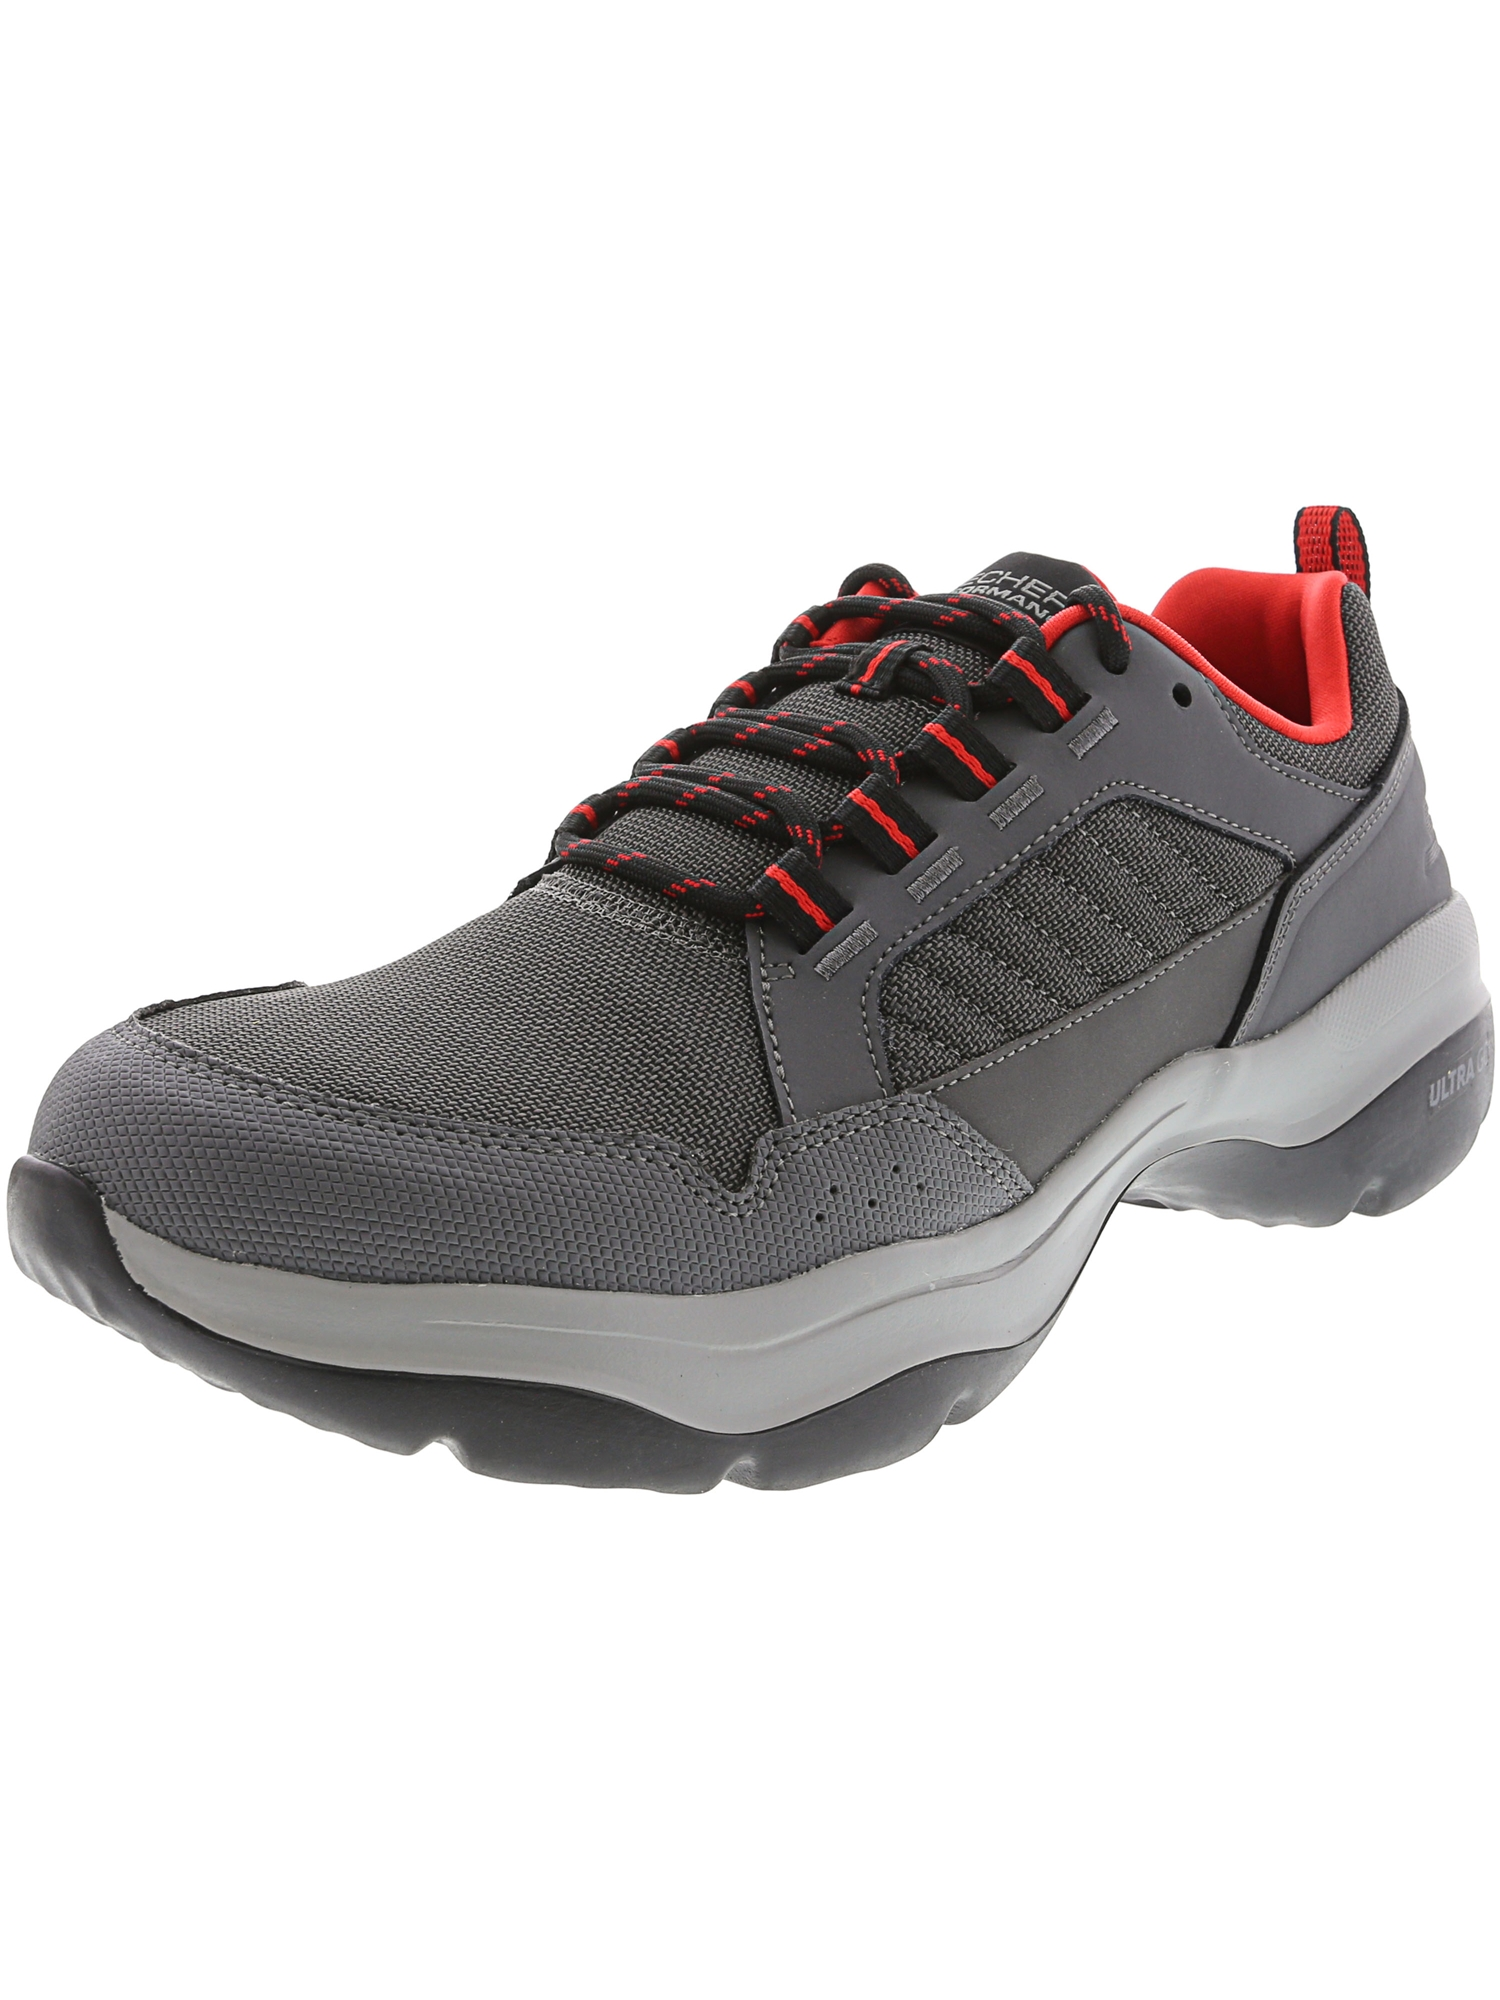 Skechers Performance Men?s Mantra Ultra-Concept Running Shoes - 9M - Charcoal / Red